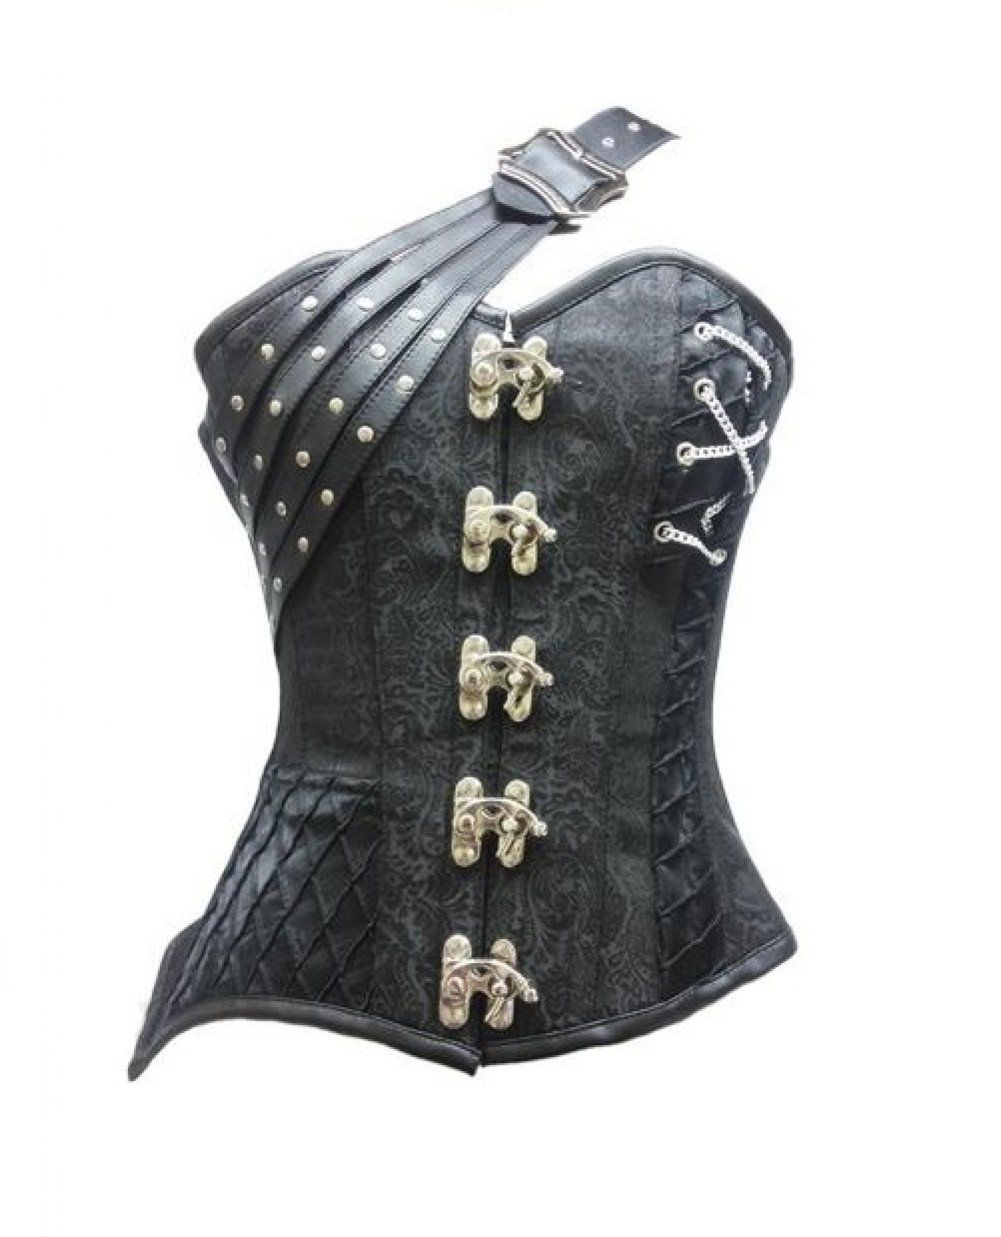 Black Brocade & Leather Straps Gothic Steampunk Bustier Fantasy Overbust Corset